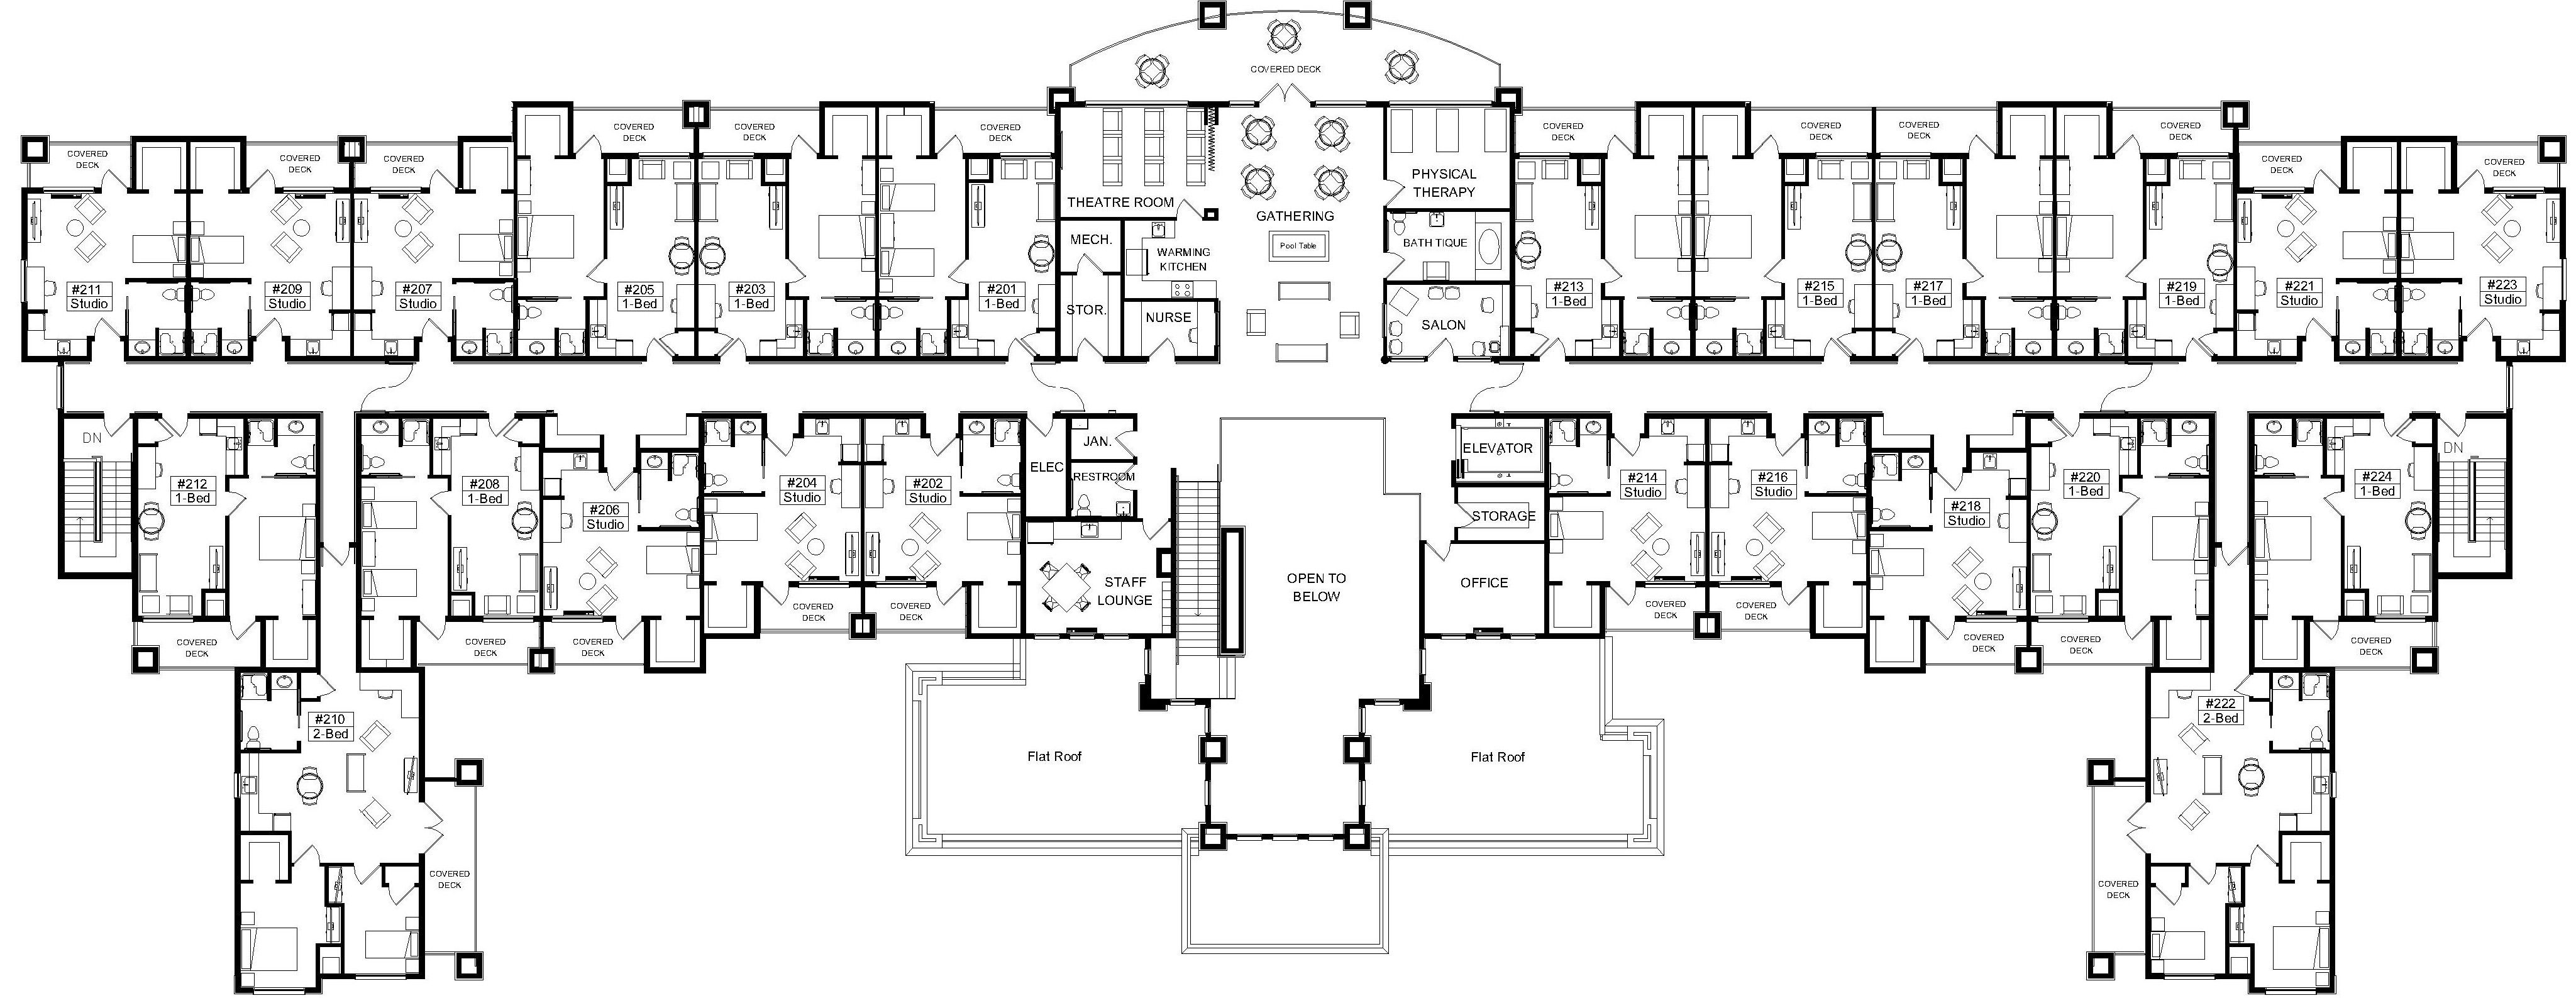 Second floor plan arch pinterest arch for Retirement home plans